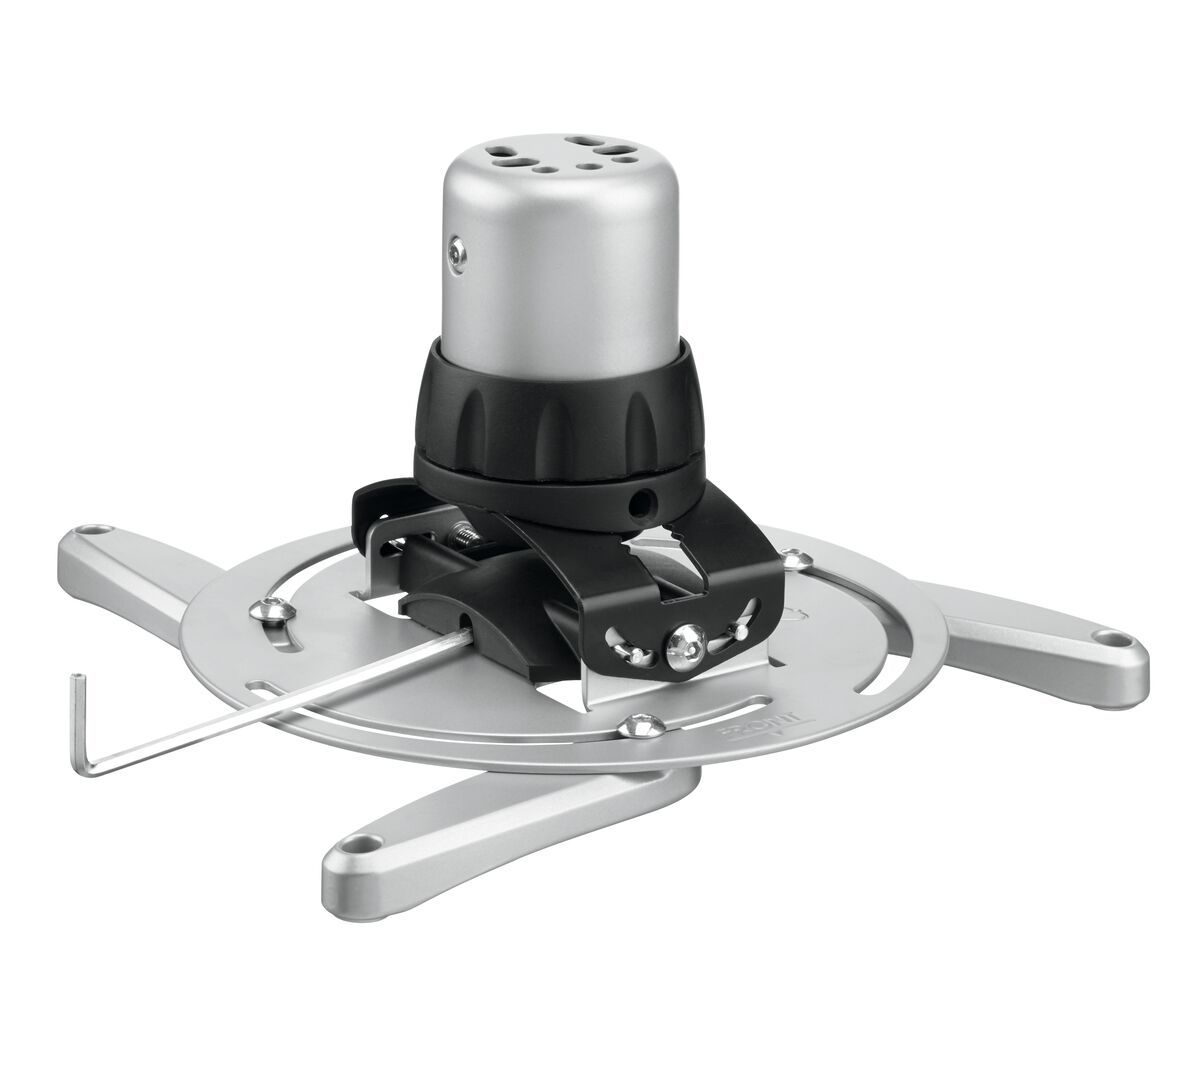 Vogel's PPC 2500 Support plafond projecteur - Detail